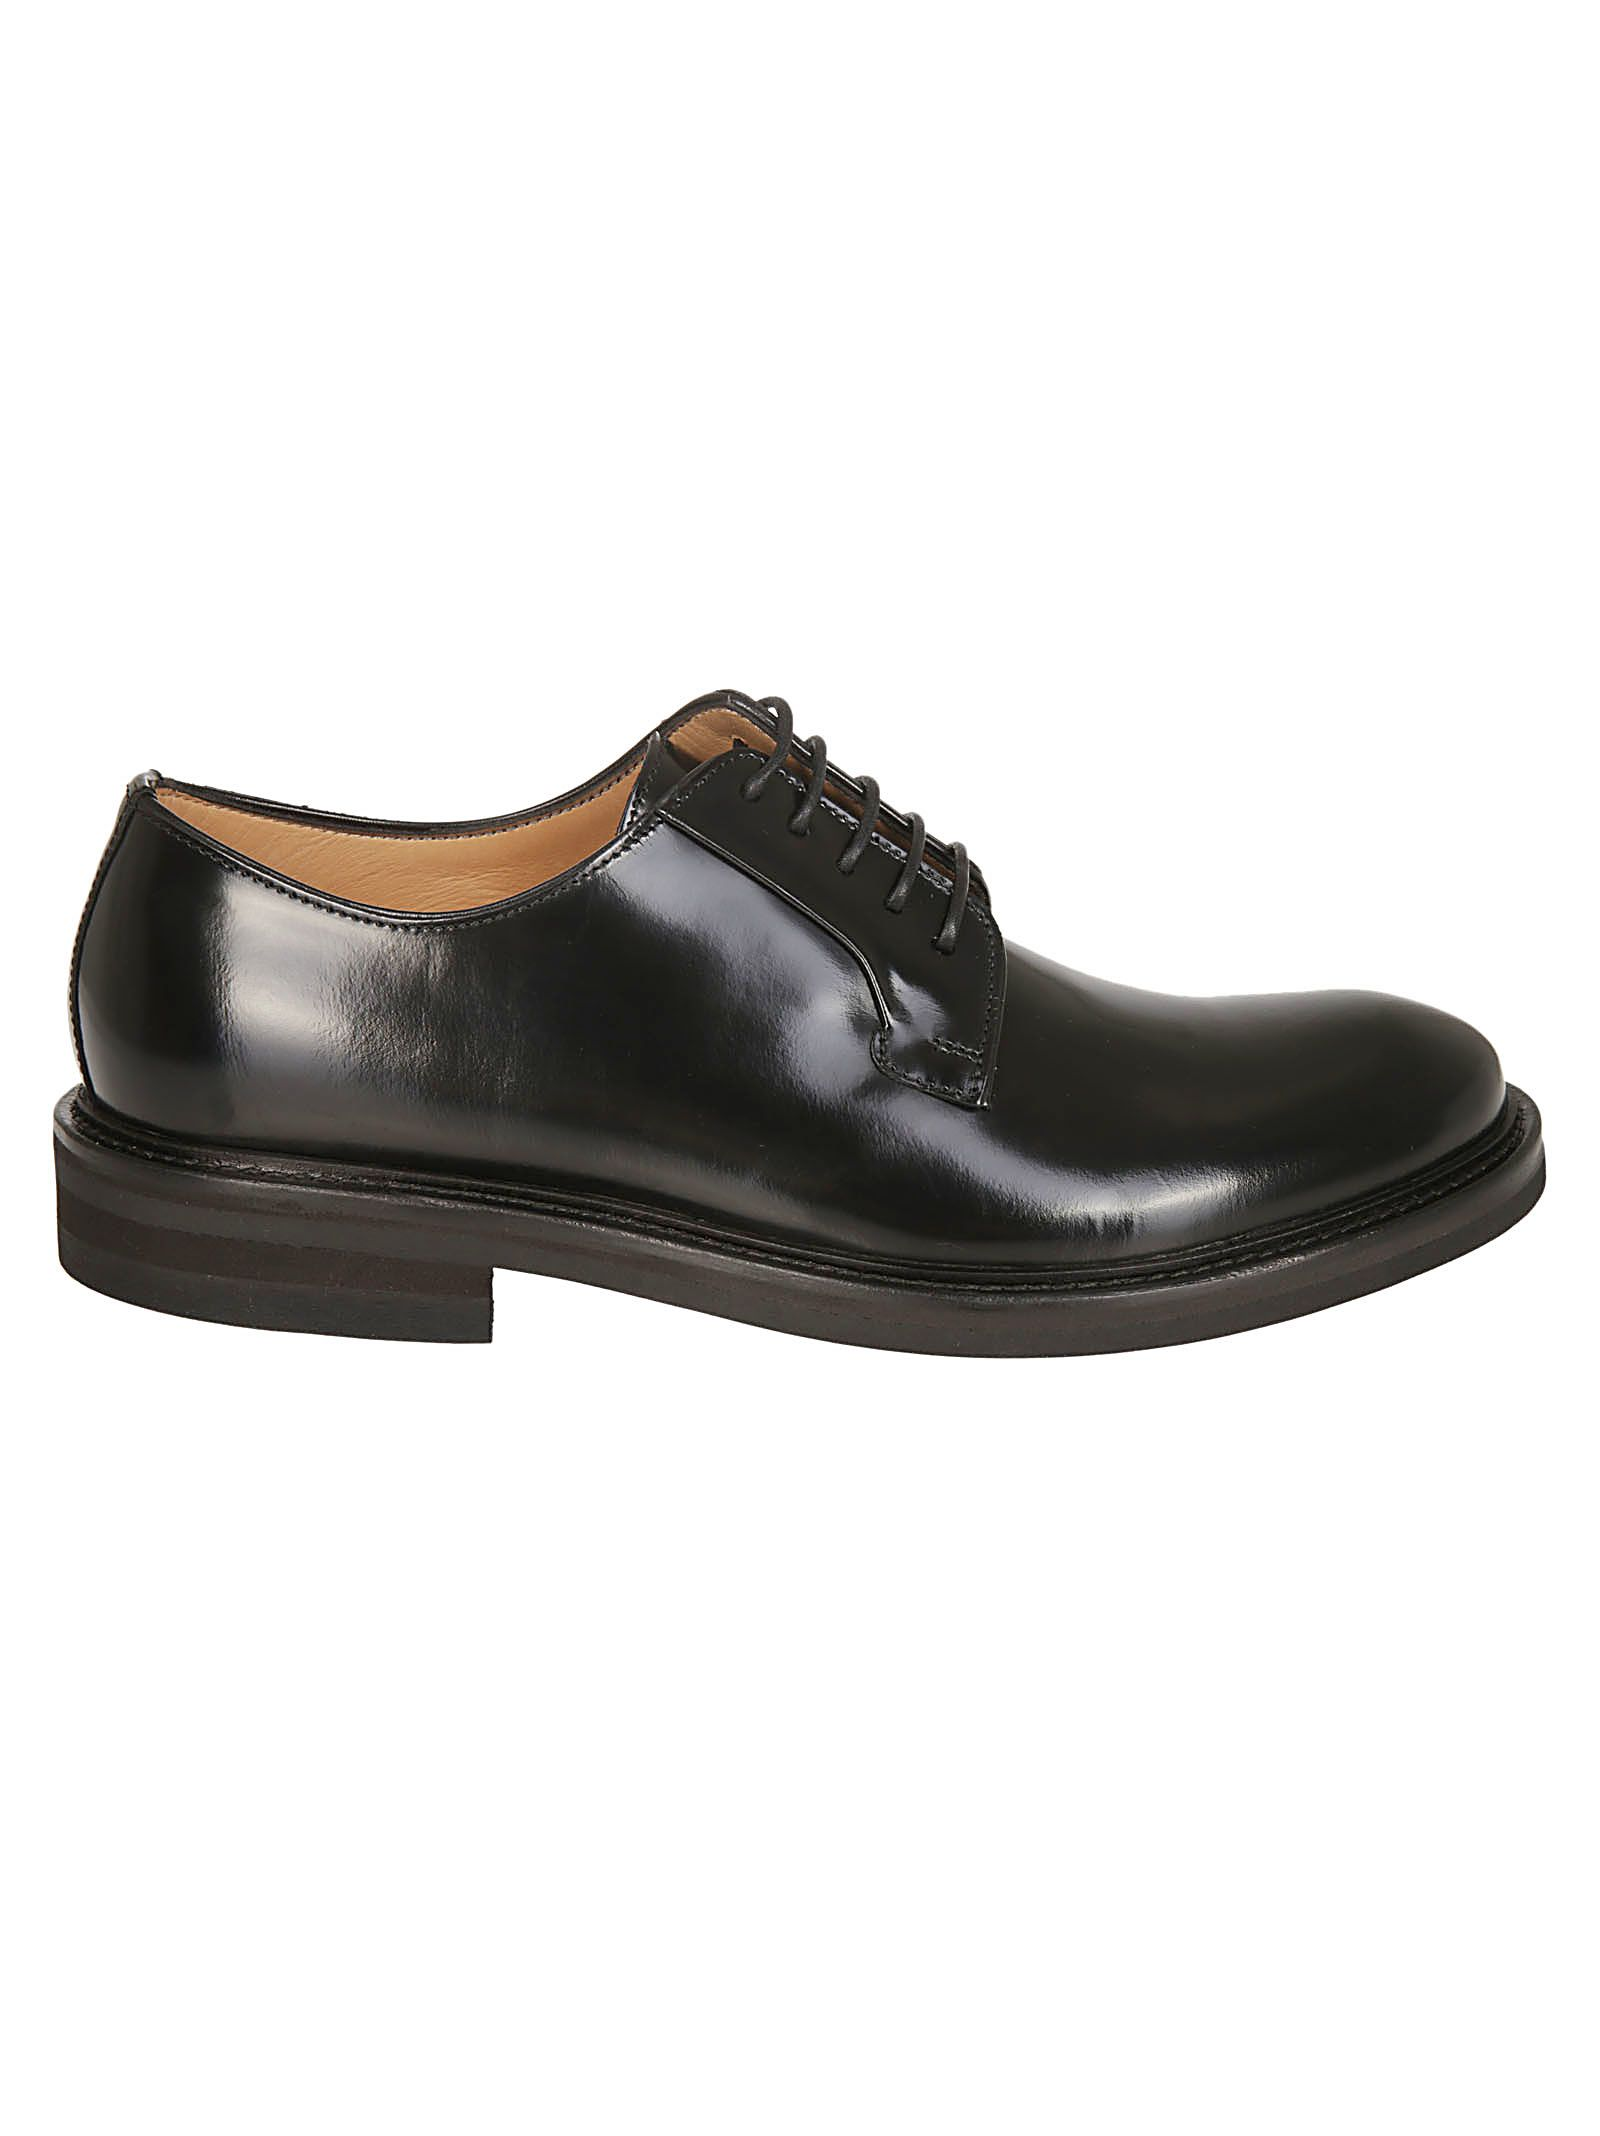 SEBOY'S Classic Derby Shoes in Black